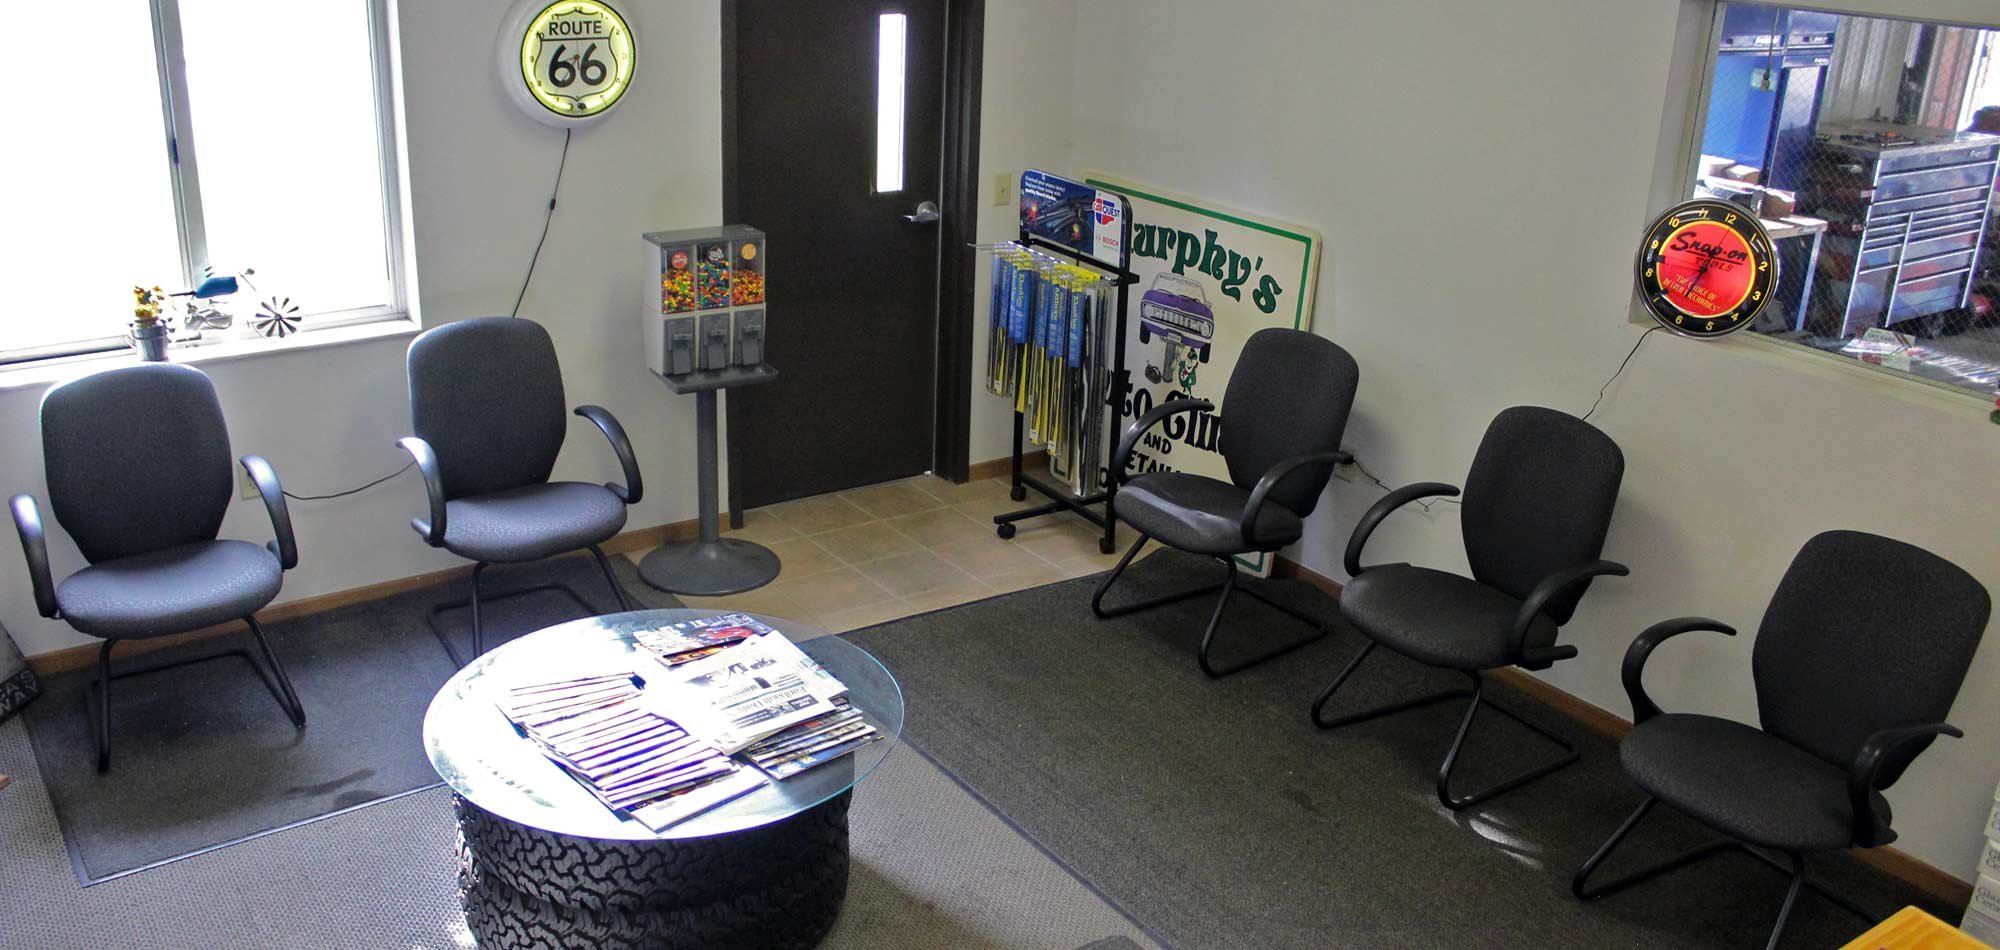 Interior of the waiting room at Murphy's Auto Center in Faribault, MN